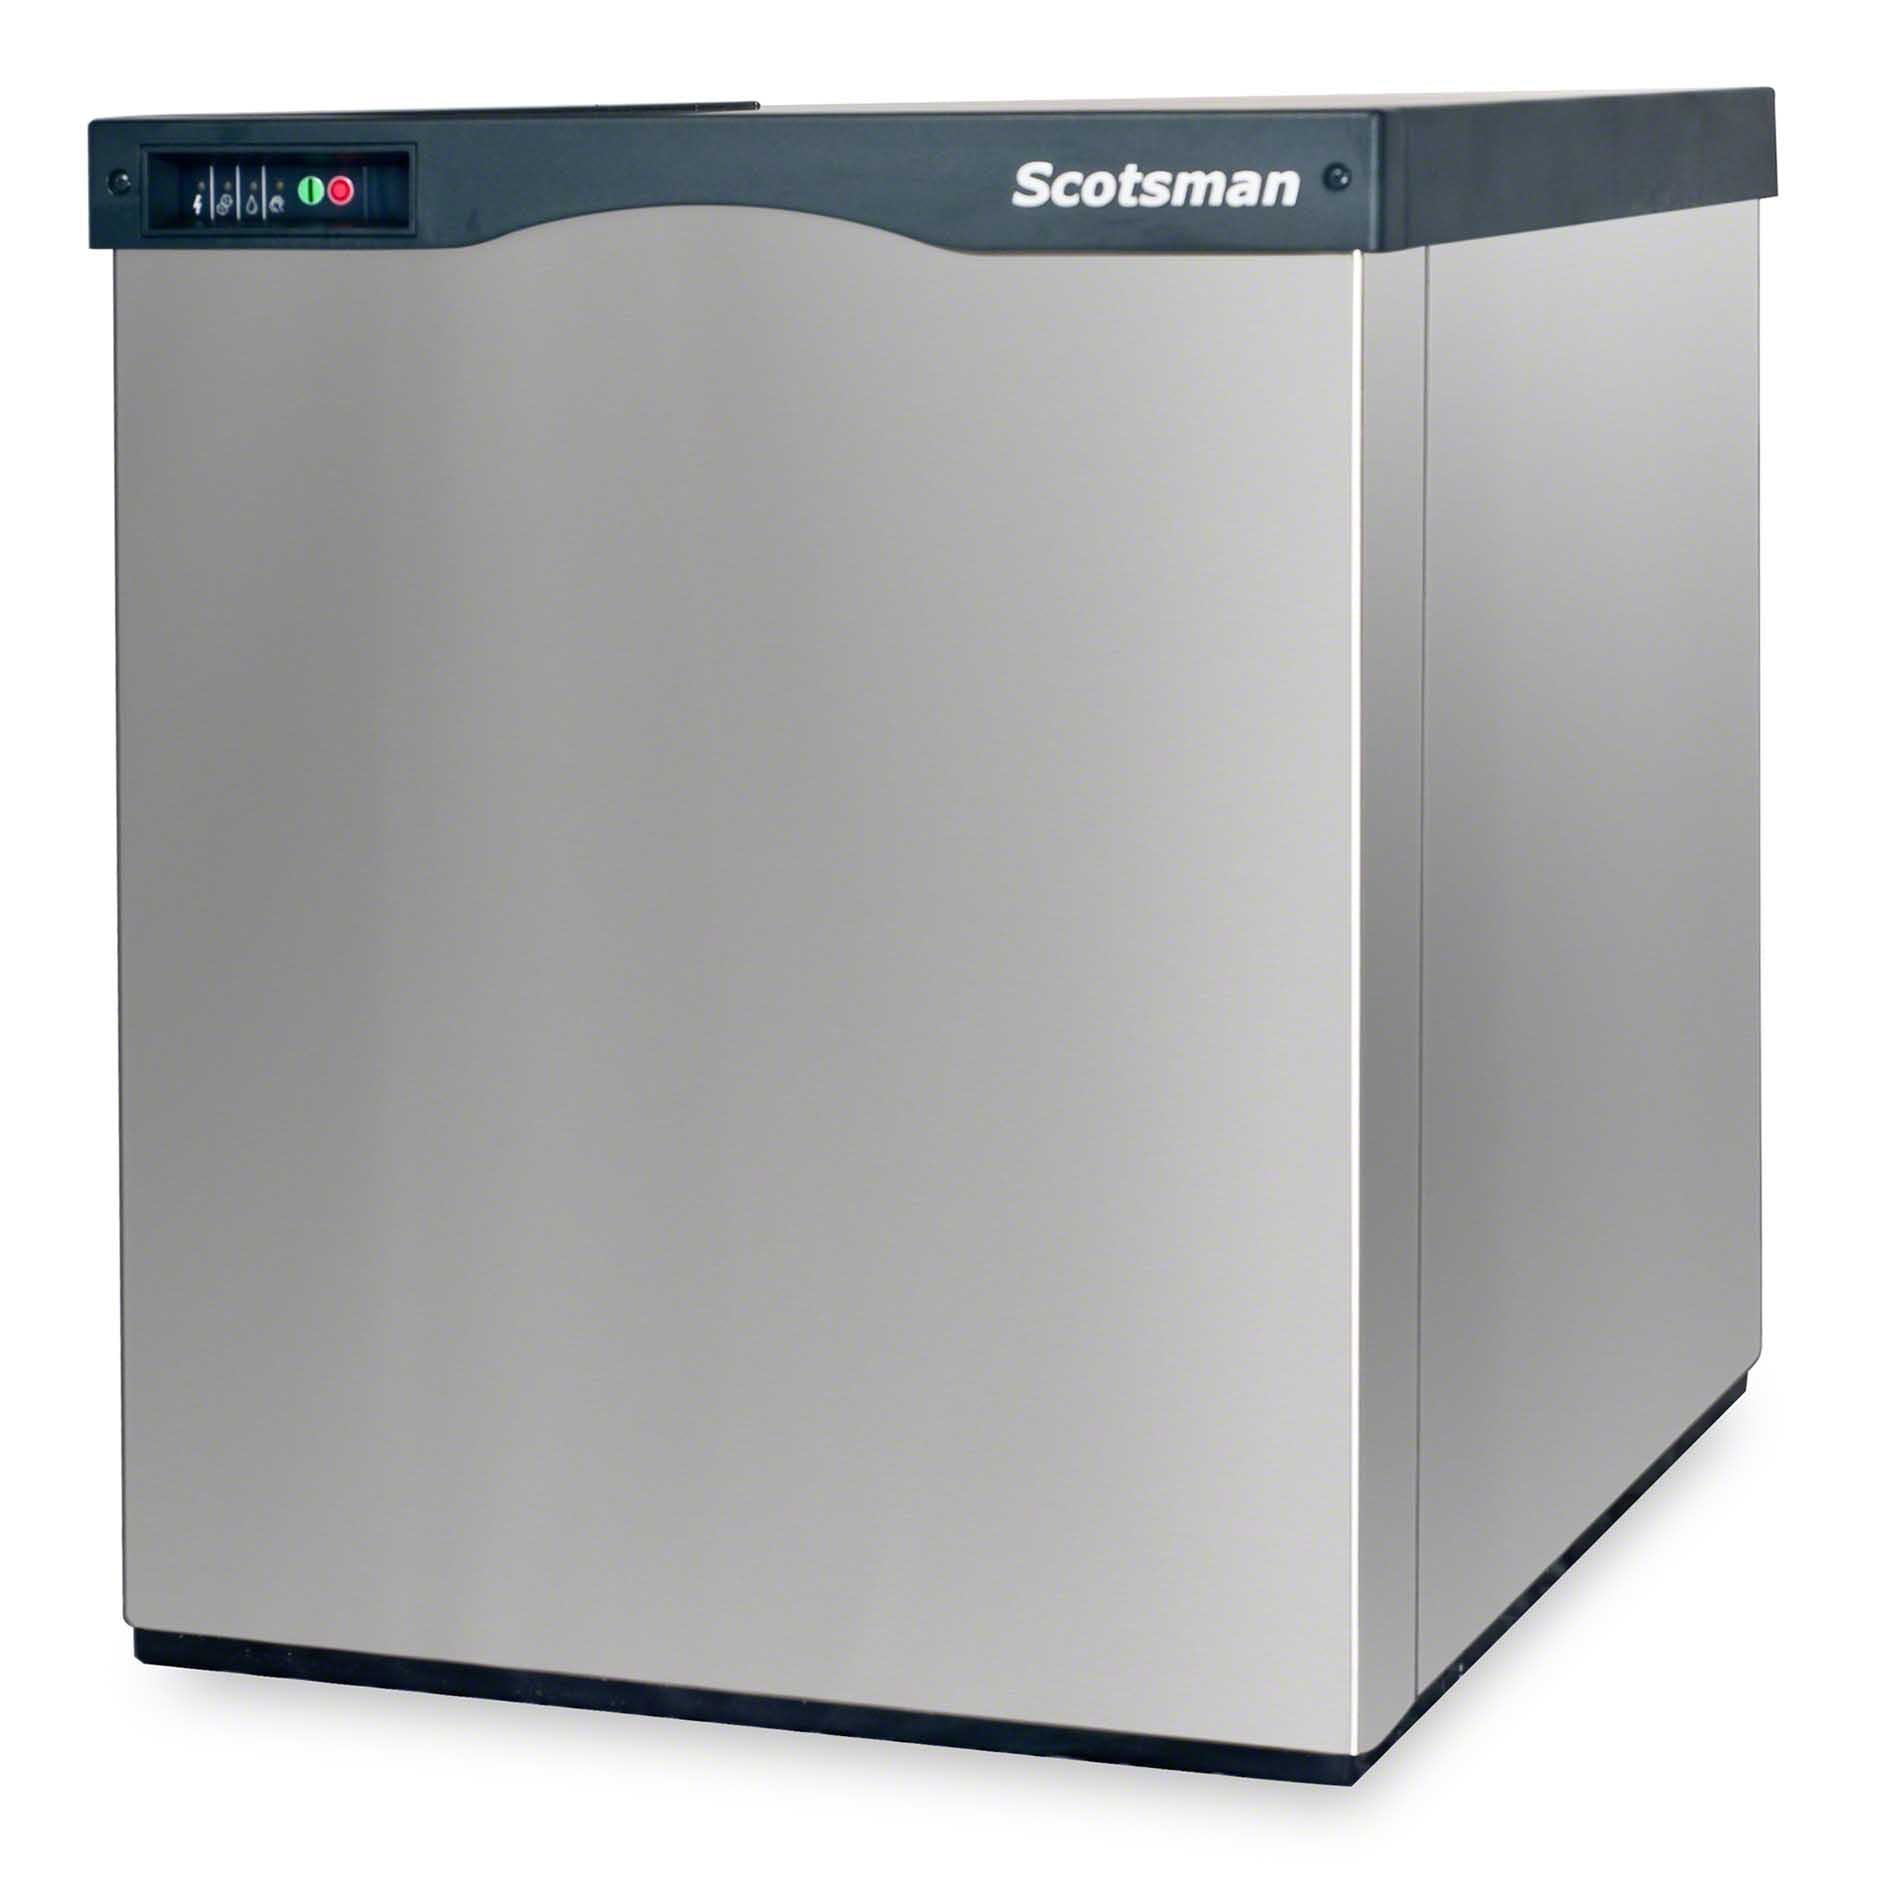 Scotsman - N1322W-32A 1354 lb Nugget Ice Machine - Prodigy Series - sold by Food Service Warehouse